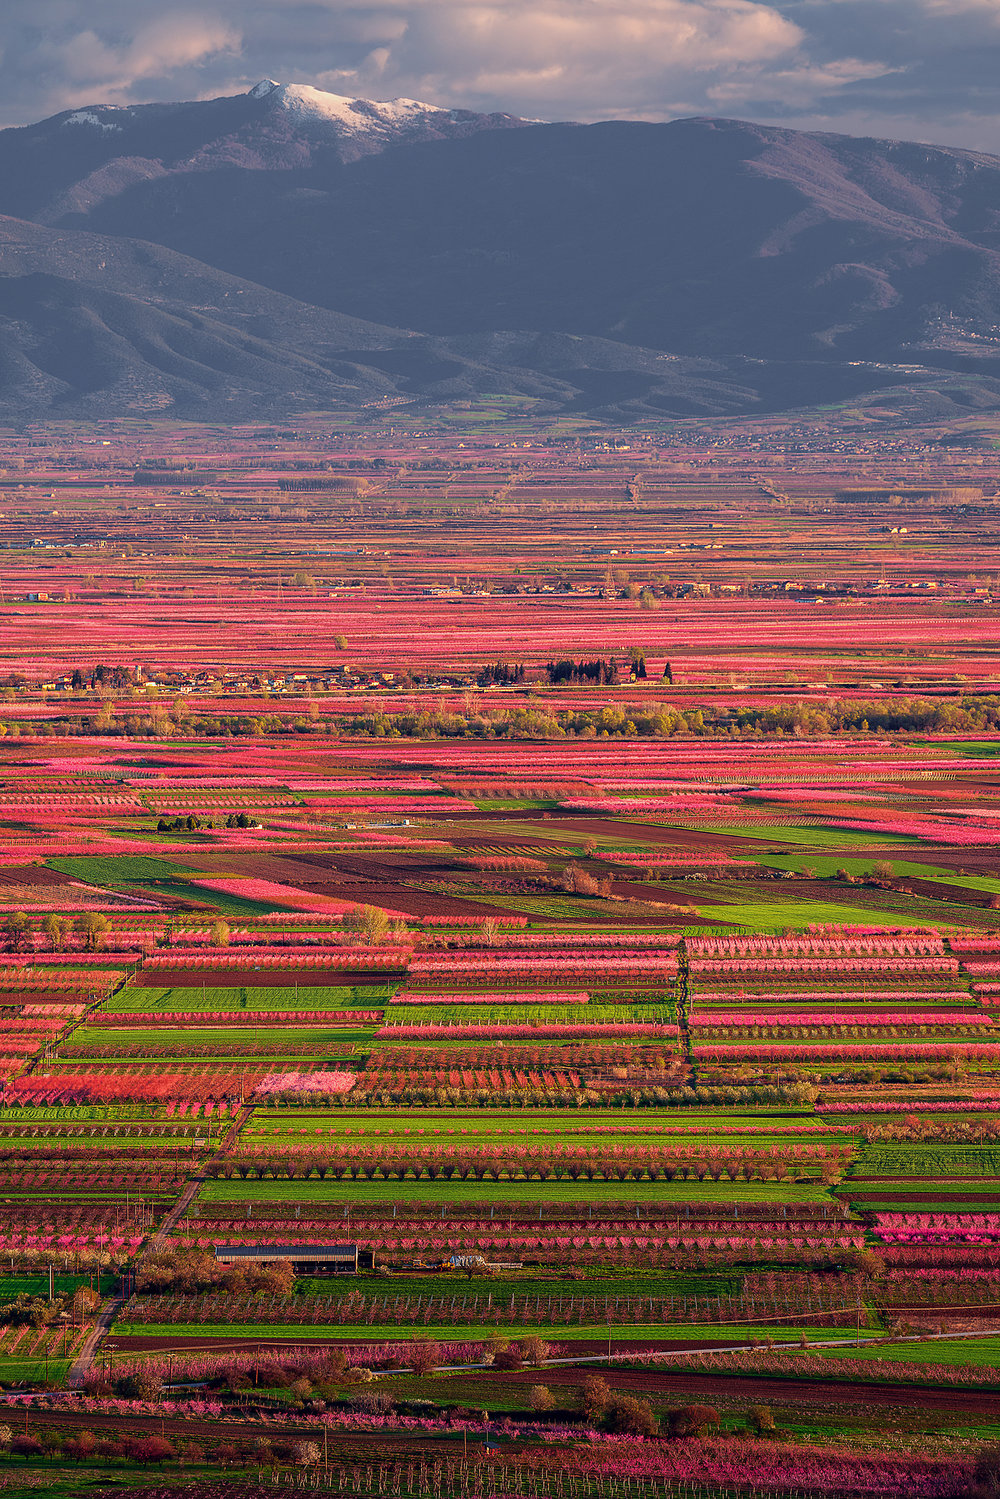 VALLEY OF PINK - VEROIA